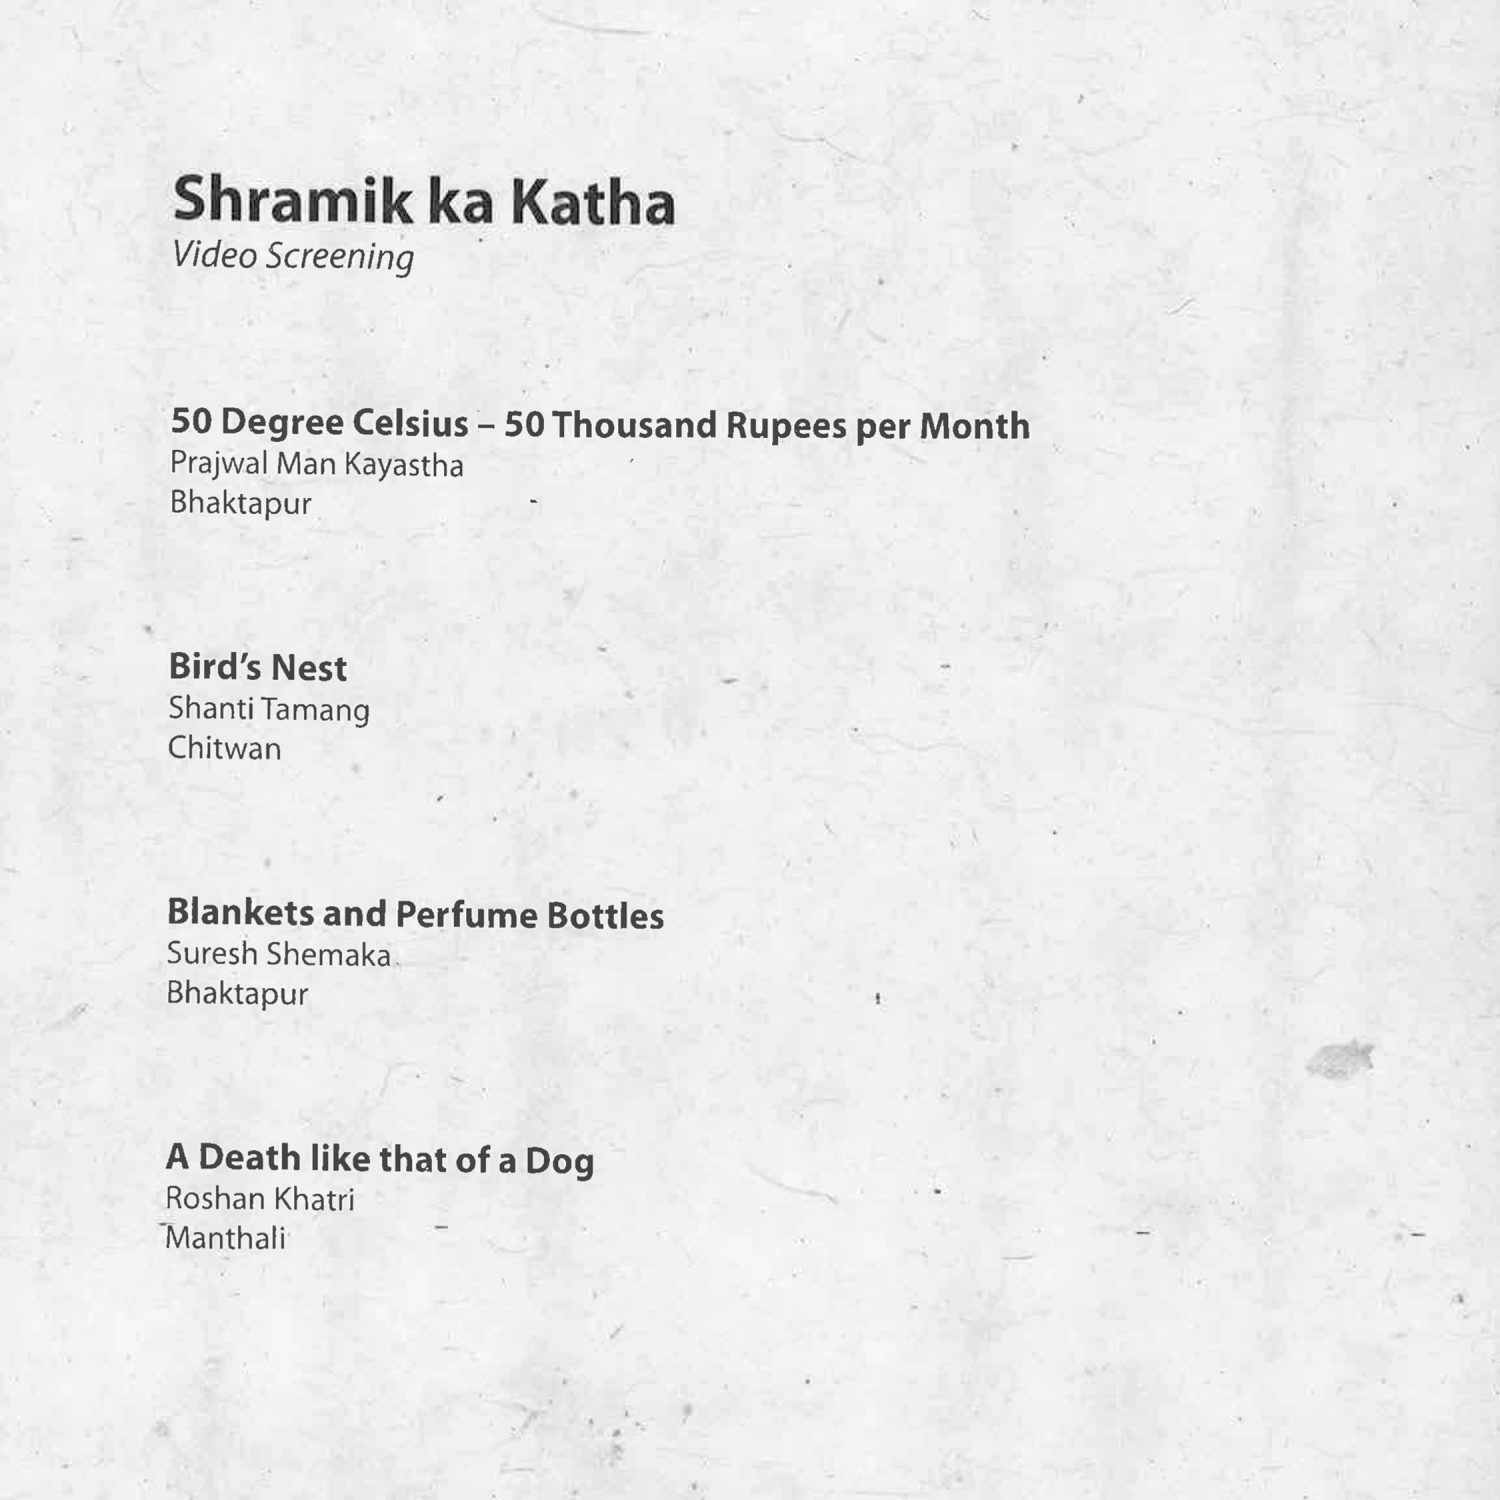 Raju GC, Shramik ka Katha (Migrant's Story) - Video Screening Titles, Multimedia Installation, Audio Stories and Video Screenings, Chysal, 2018